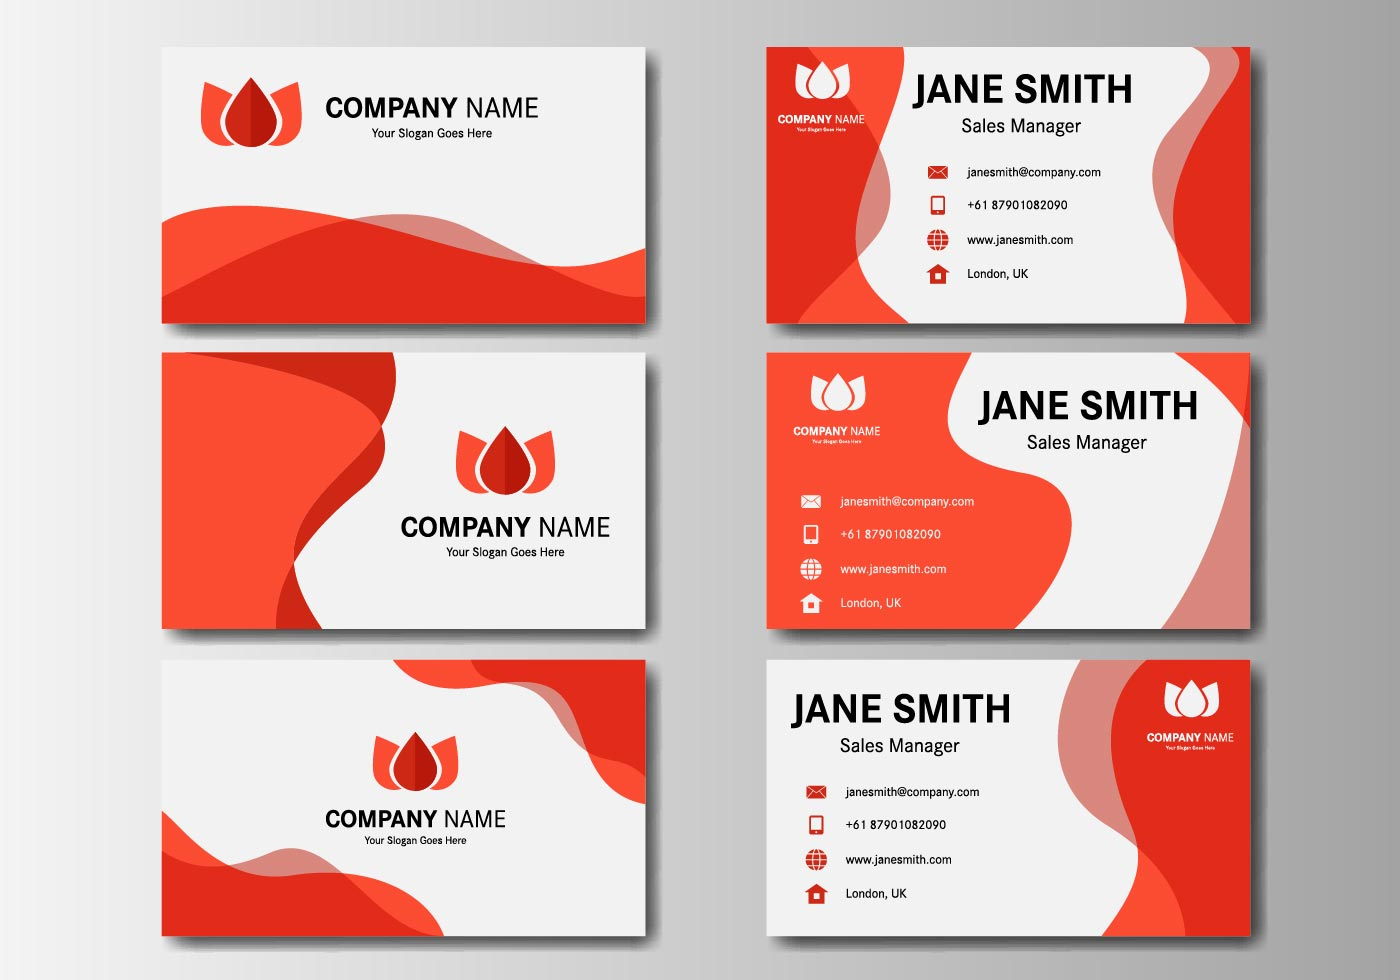 Anchor Name Card Templates - Download Free Vector Art, Stock ...